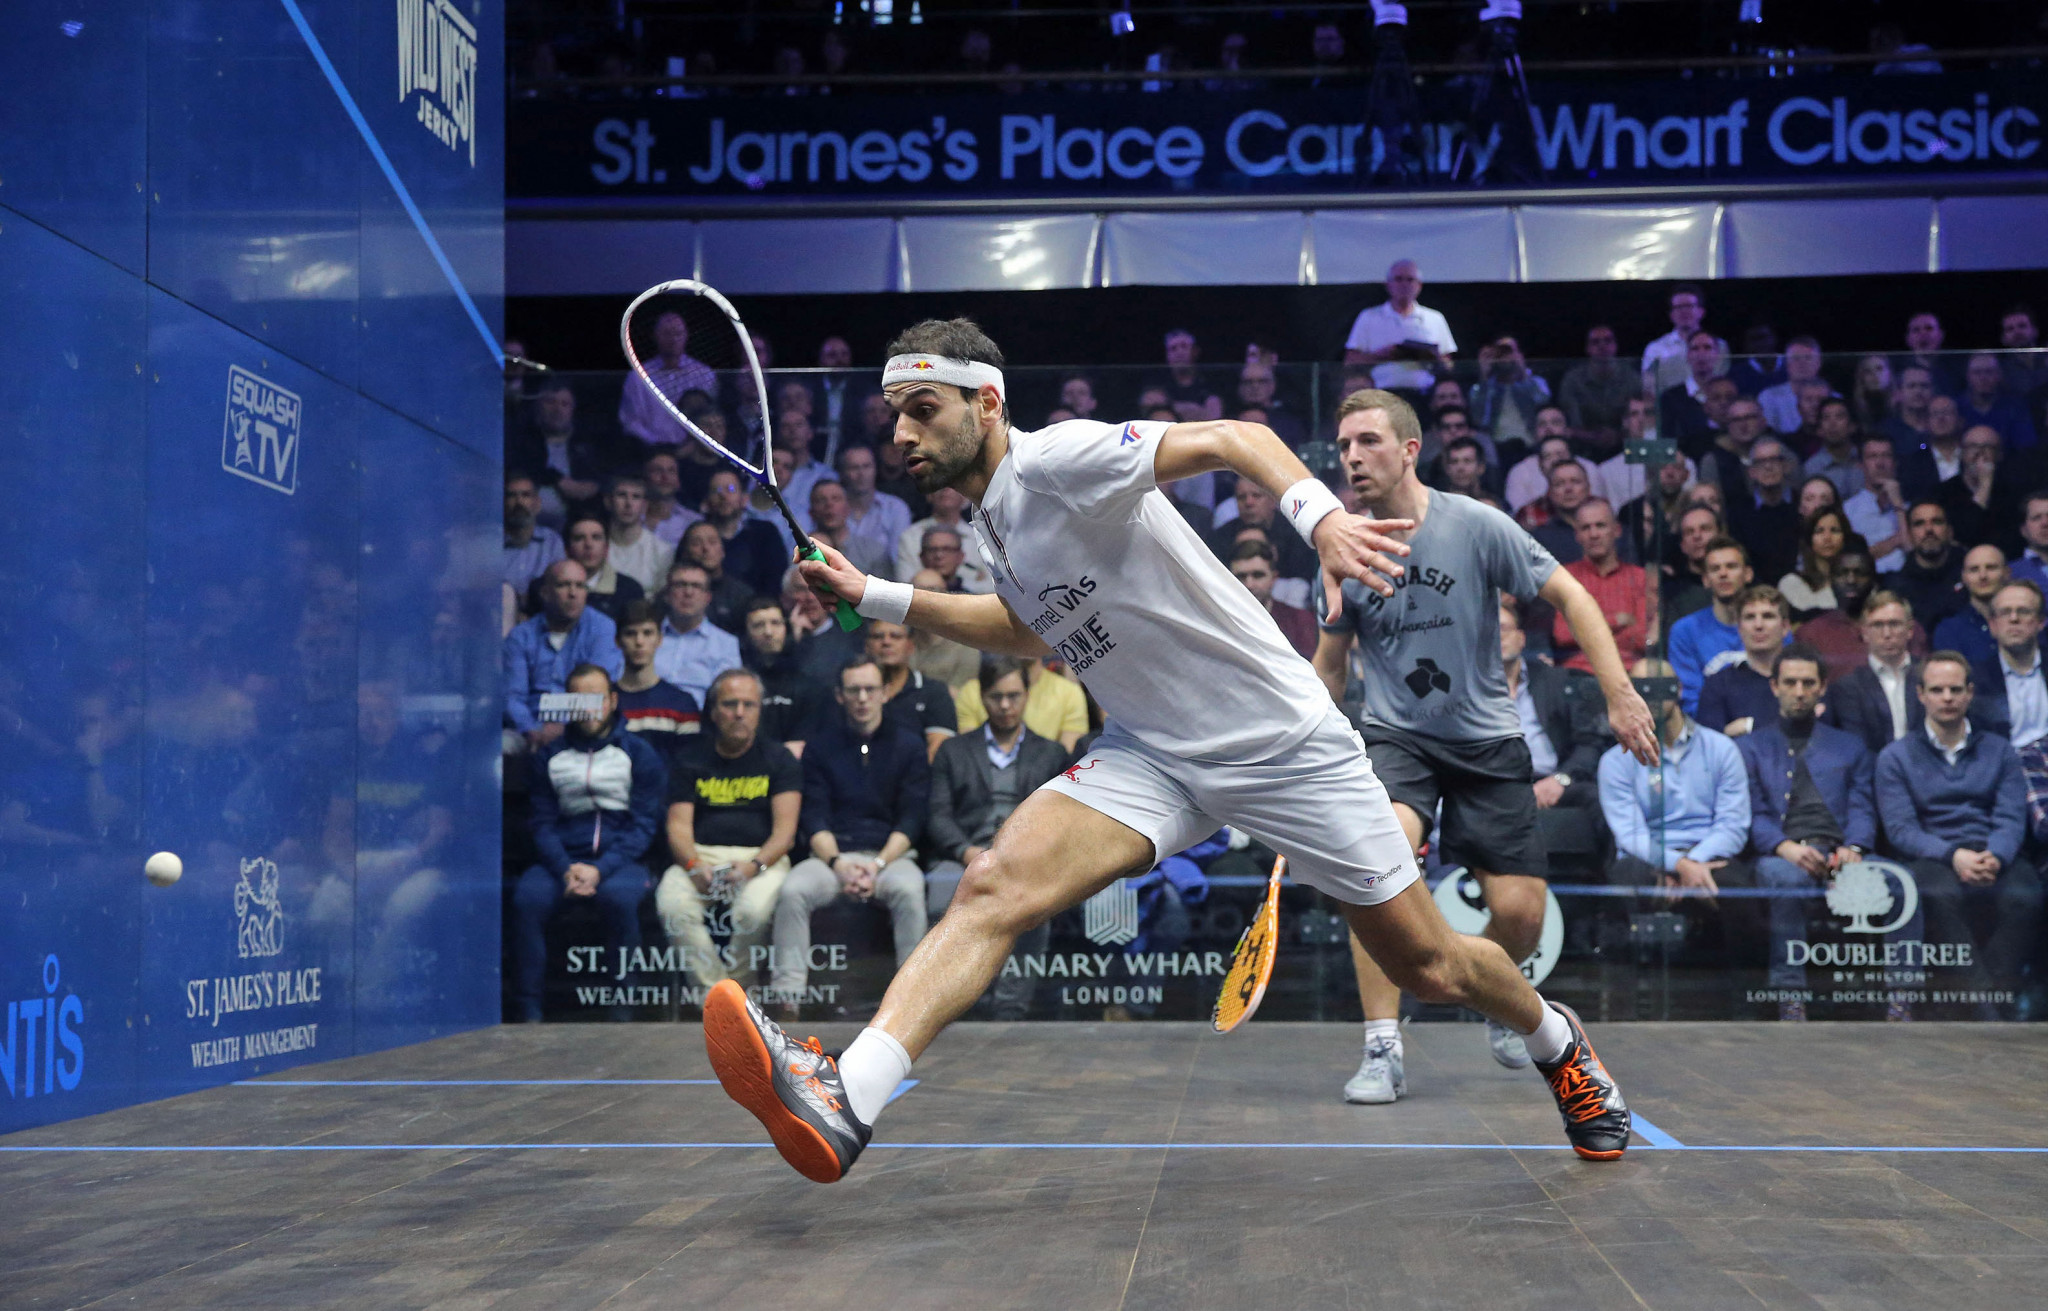 Egypt's Mohamed ElShorbagy beat France's Mathieu Castagnet to reach the quarter-finals at the St James's Place Canary Wharf Classic ©PSA